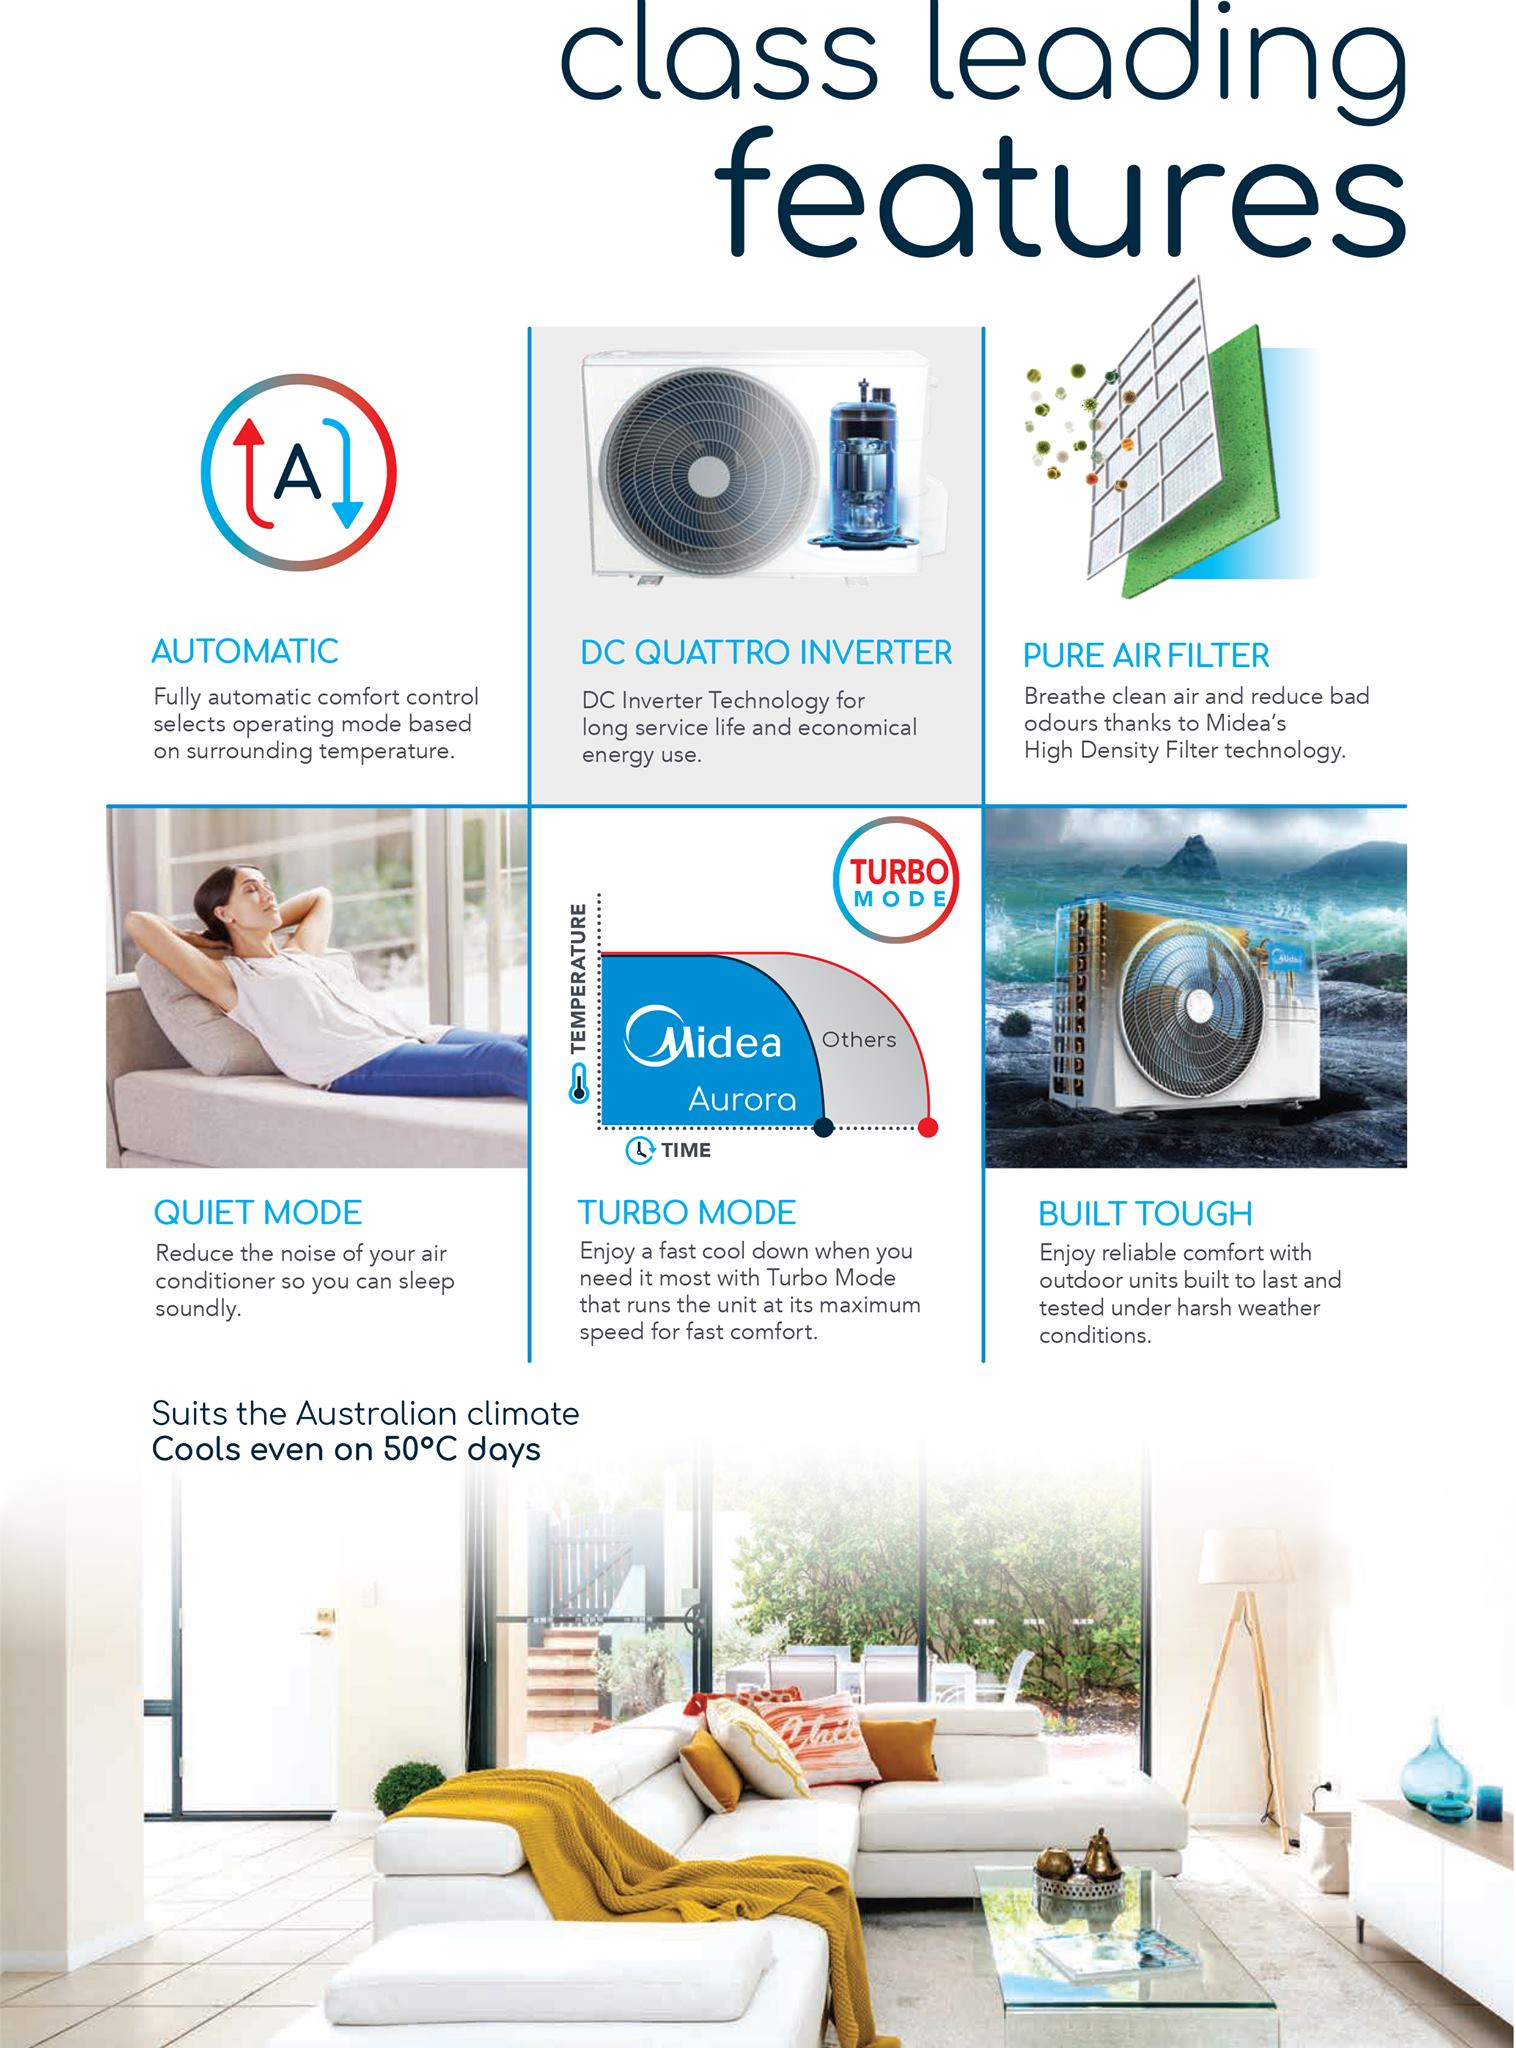 Midea Air Conditioning Star Sparky Direct